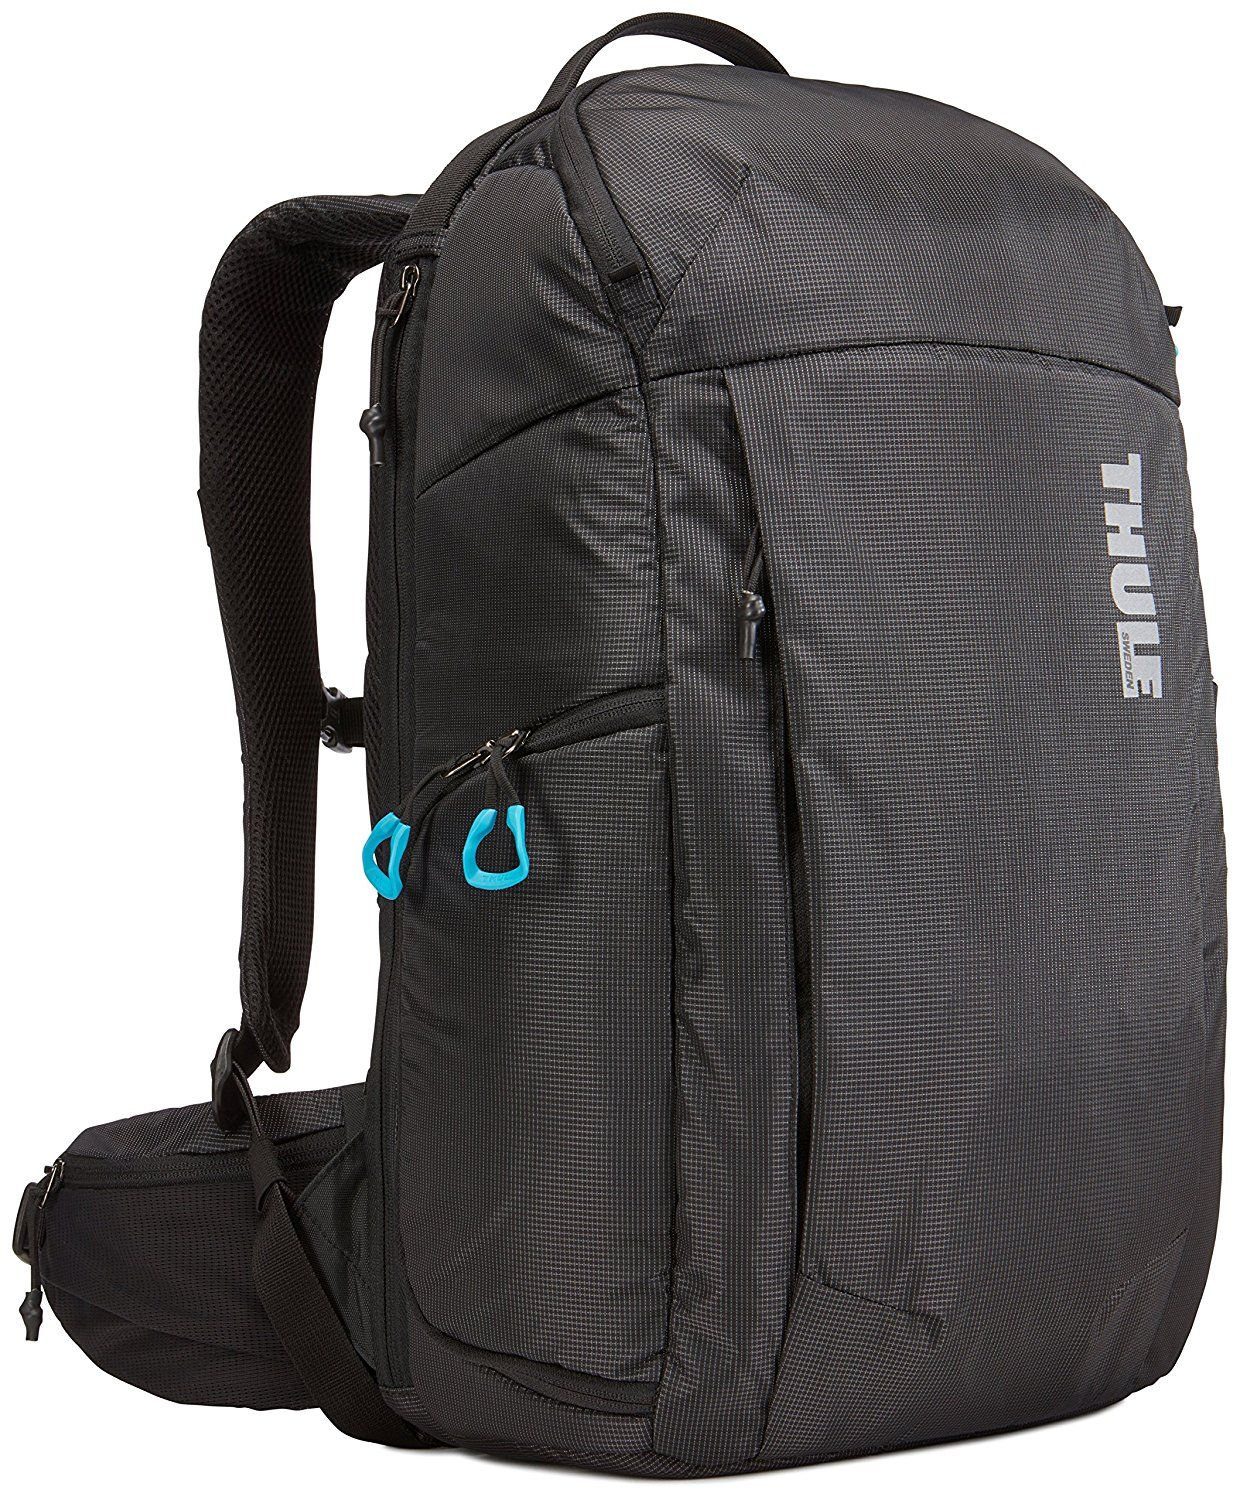 919cab2045 Manfrotto Advanced Travel Backpack Price- Fenix Toulouse Handball